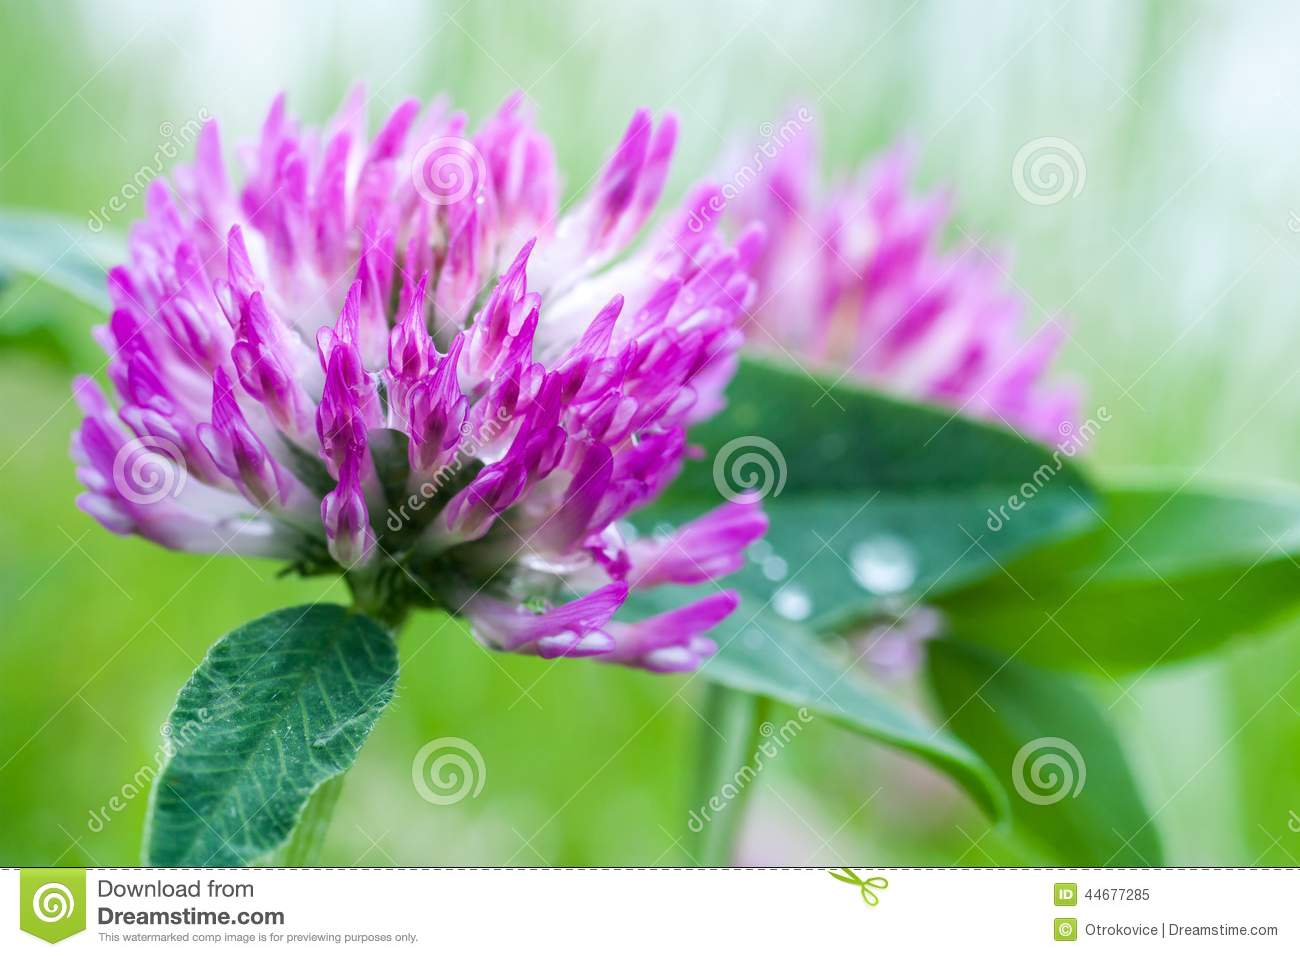 Clover Flower Stock Image Image Of Nature Pink Macro 44677285